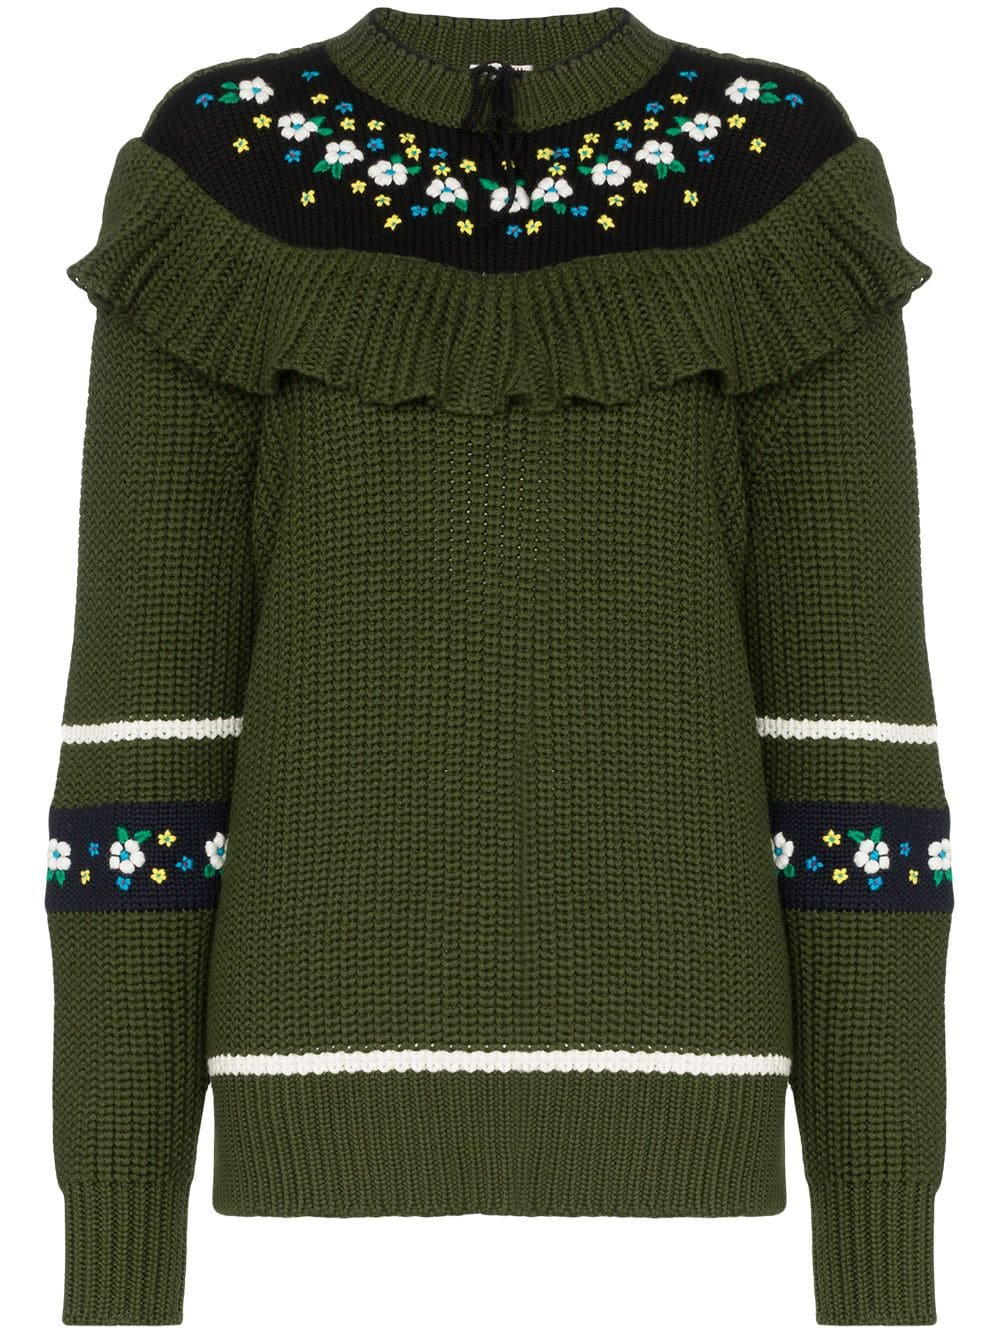 Miu Miu floral knit jumper £1,420 - Shop Online. Same Day Delivery in London